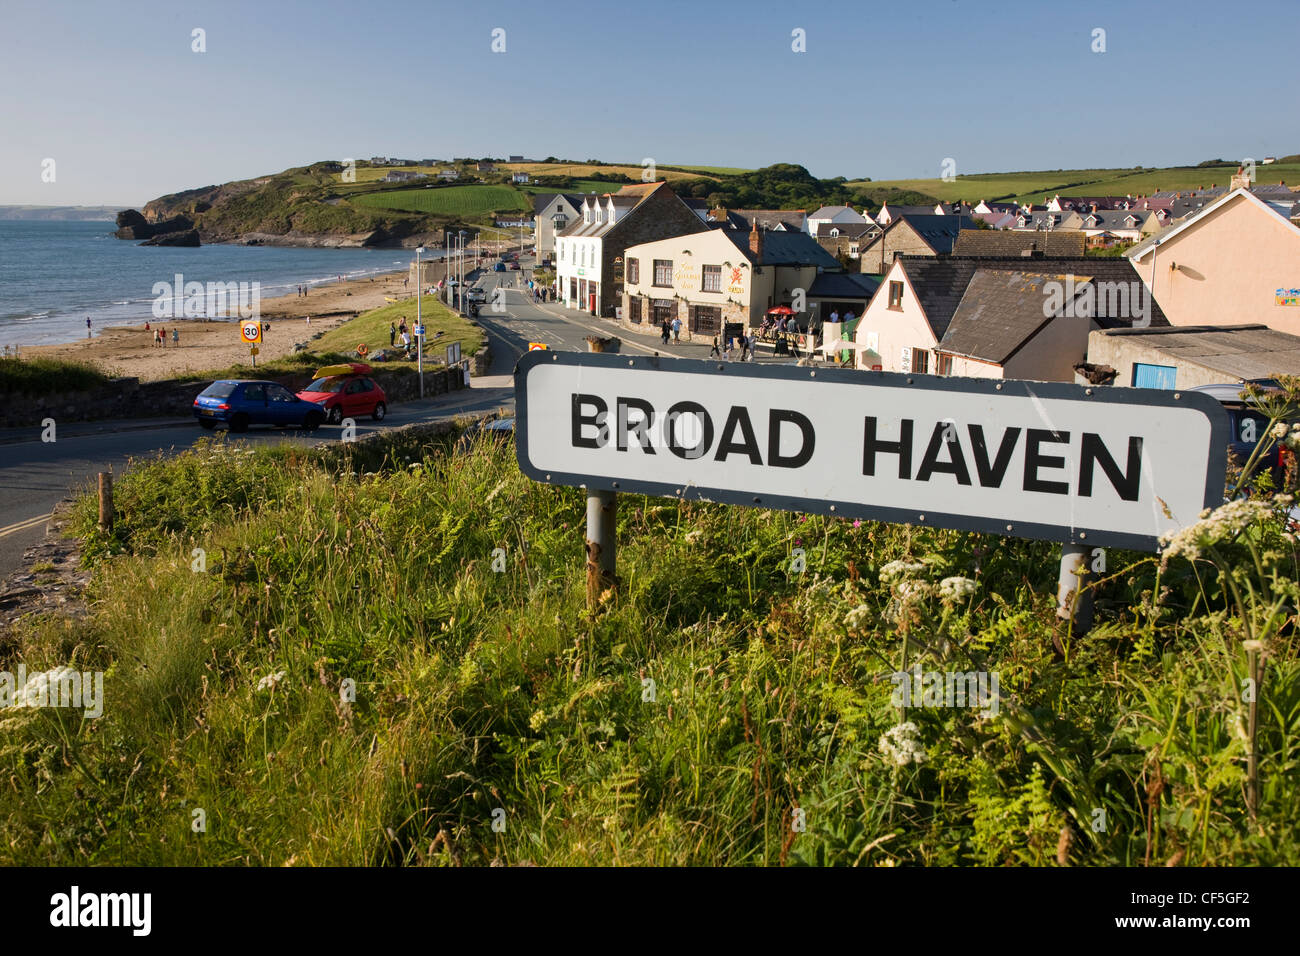 The coastal town of Broad Haven in Pembrokeshire, Wales - Stock Image